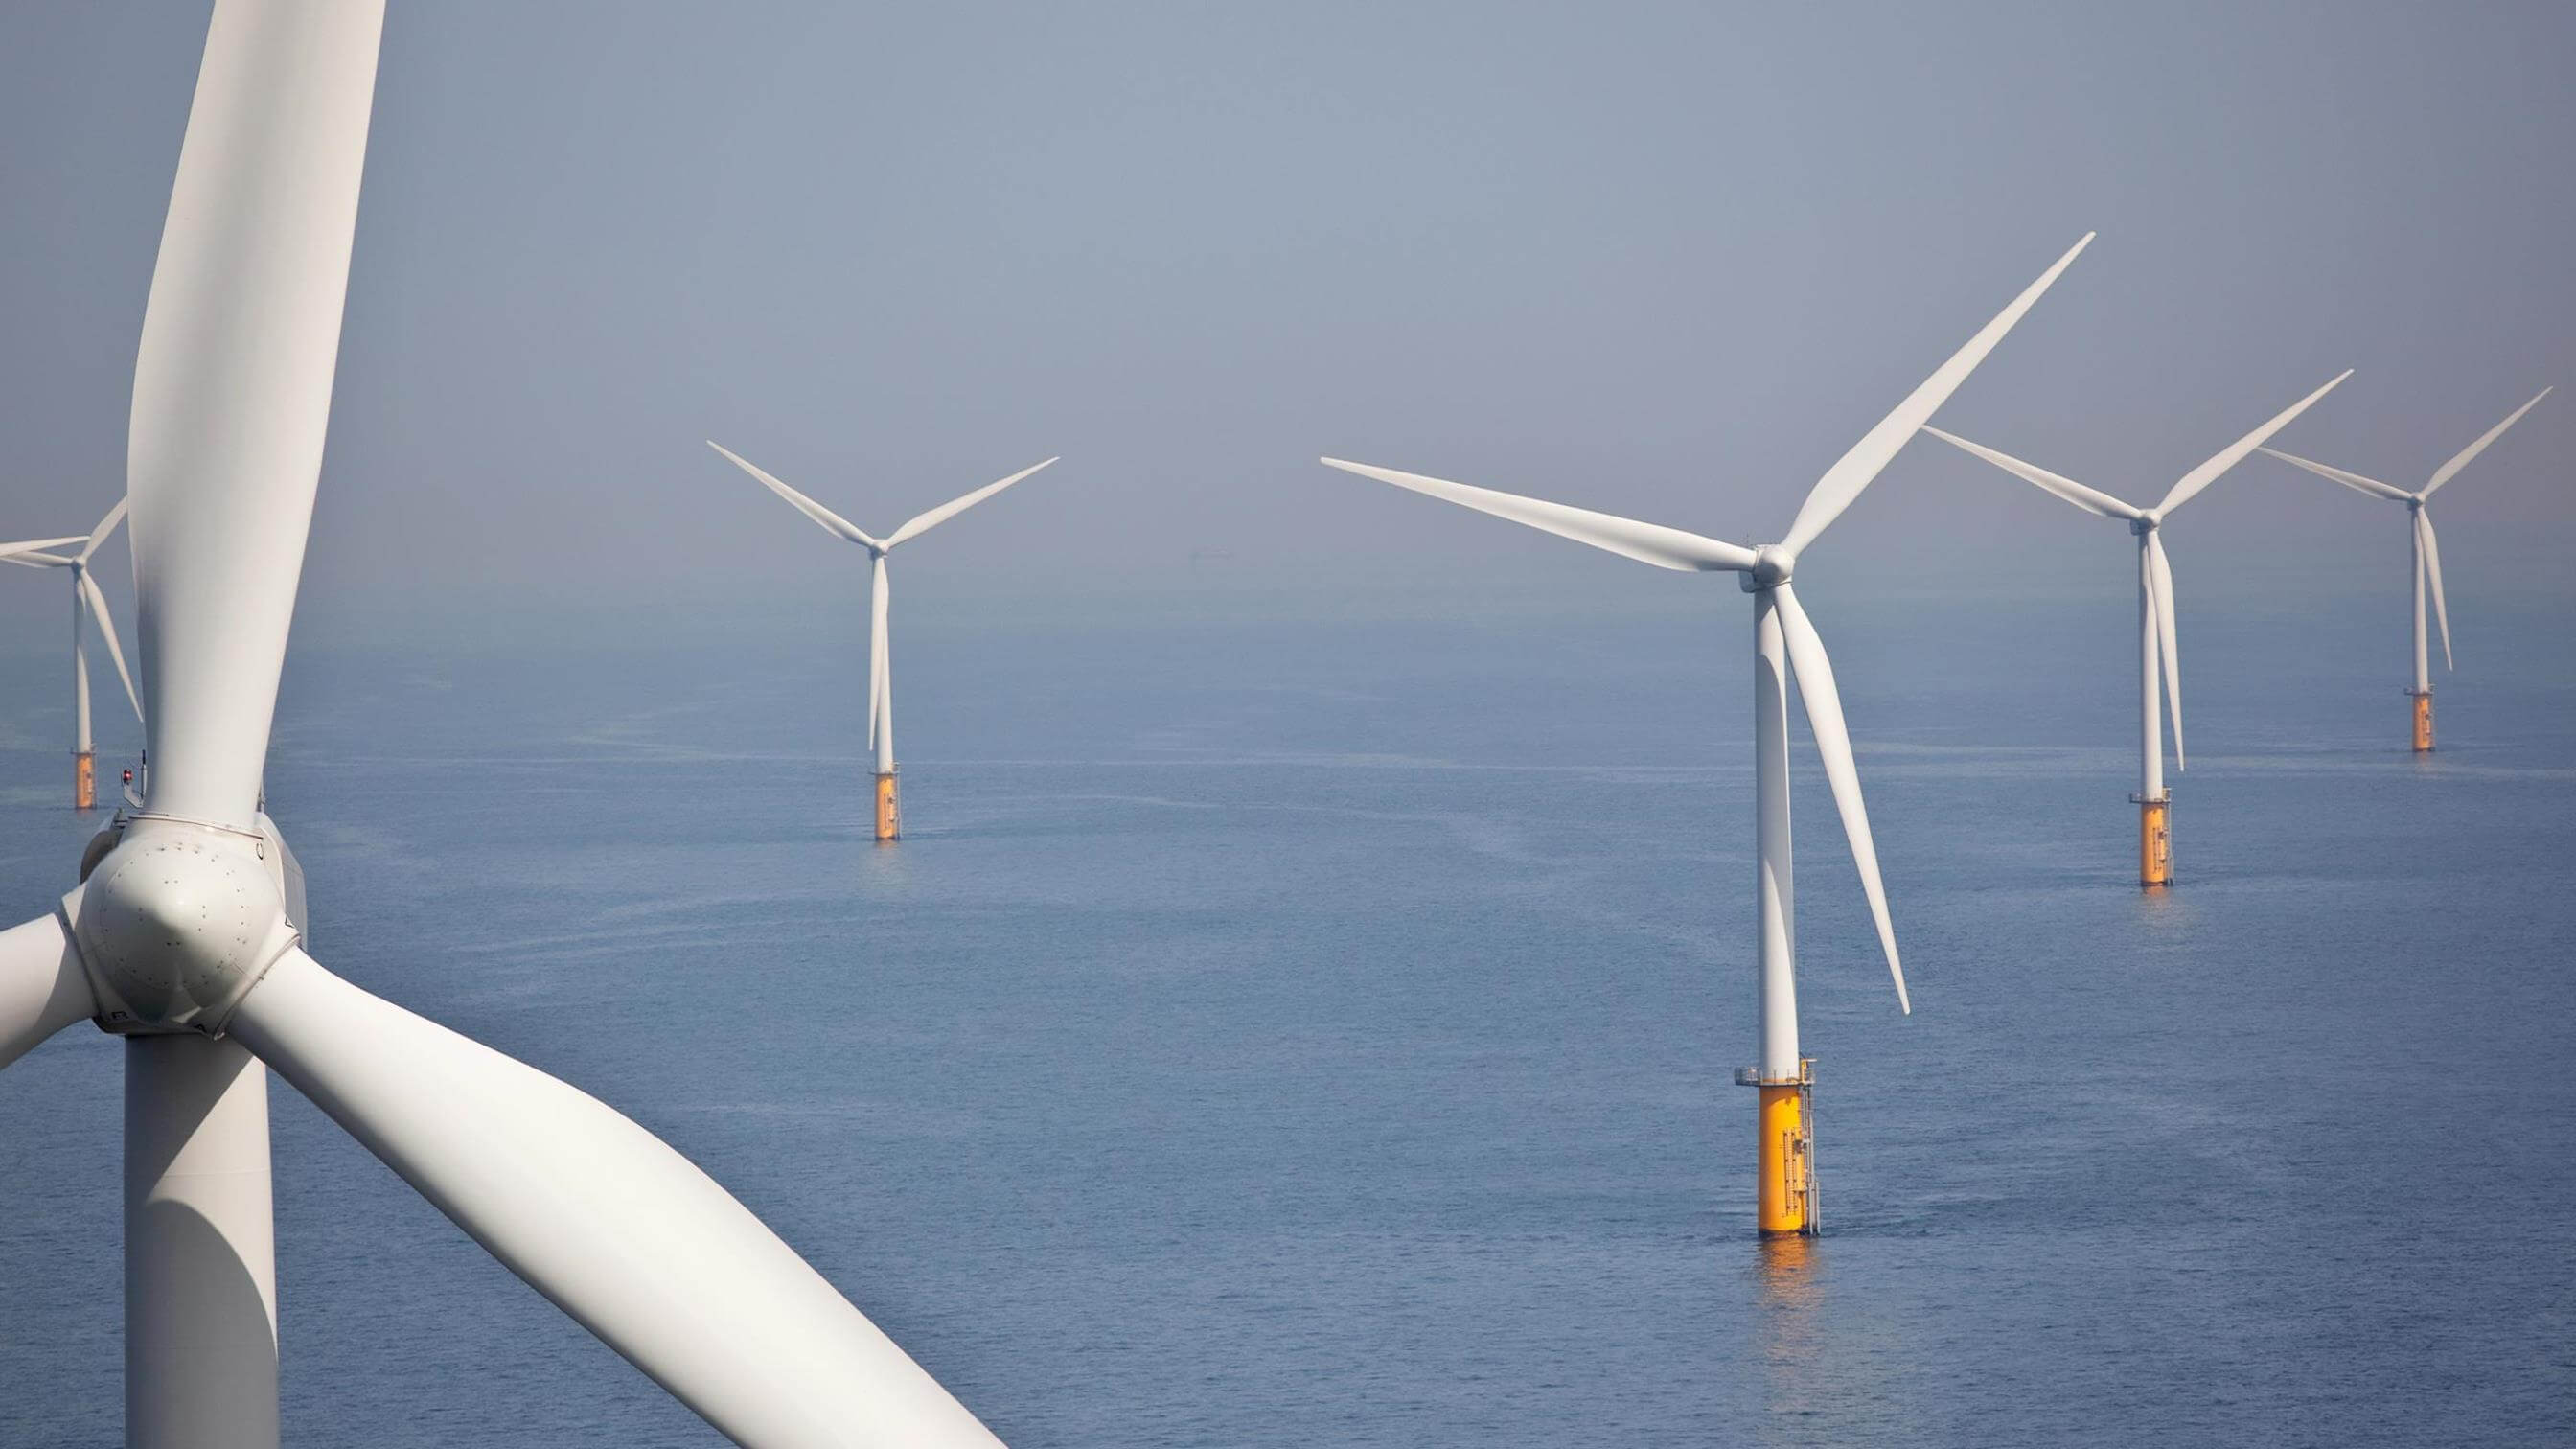 Turbines at an offshore windfarm